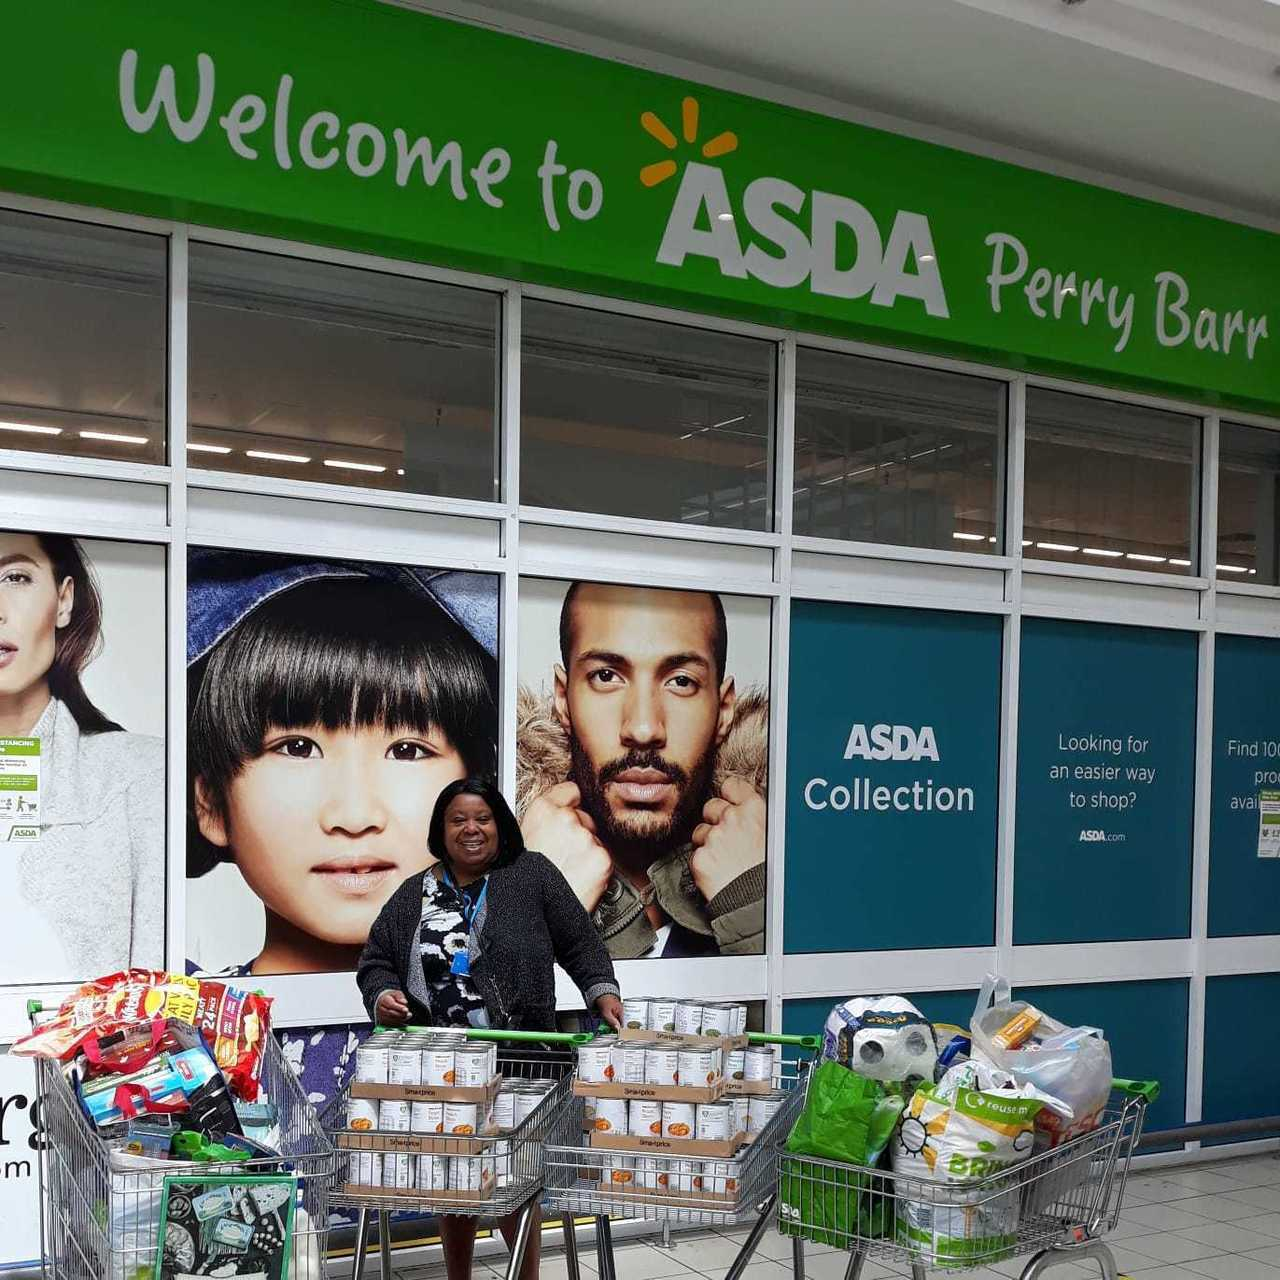 Handsworth Foodbank support | Asda Perry Barr